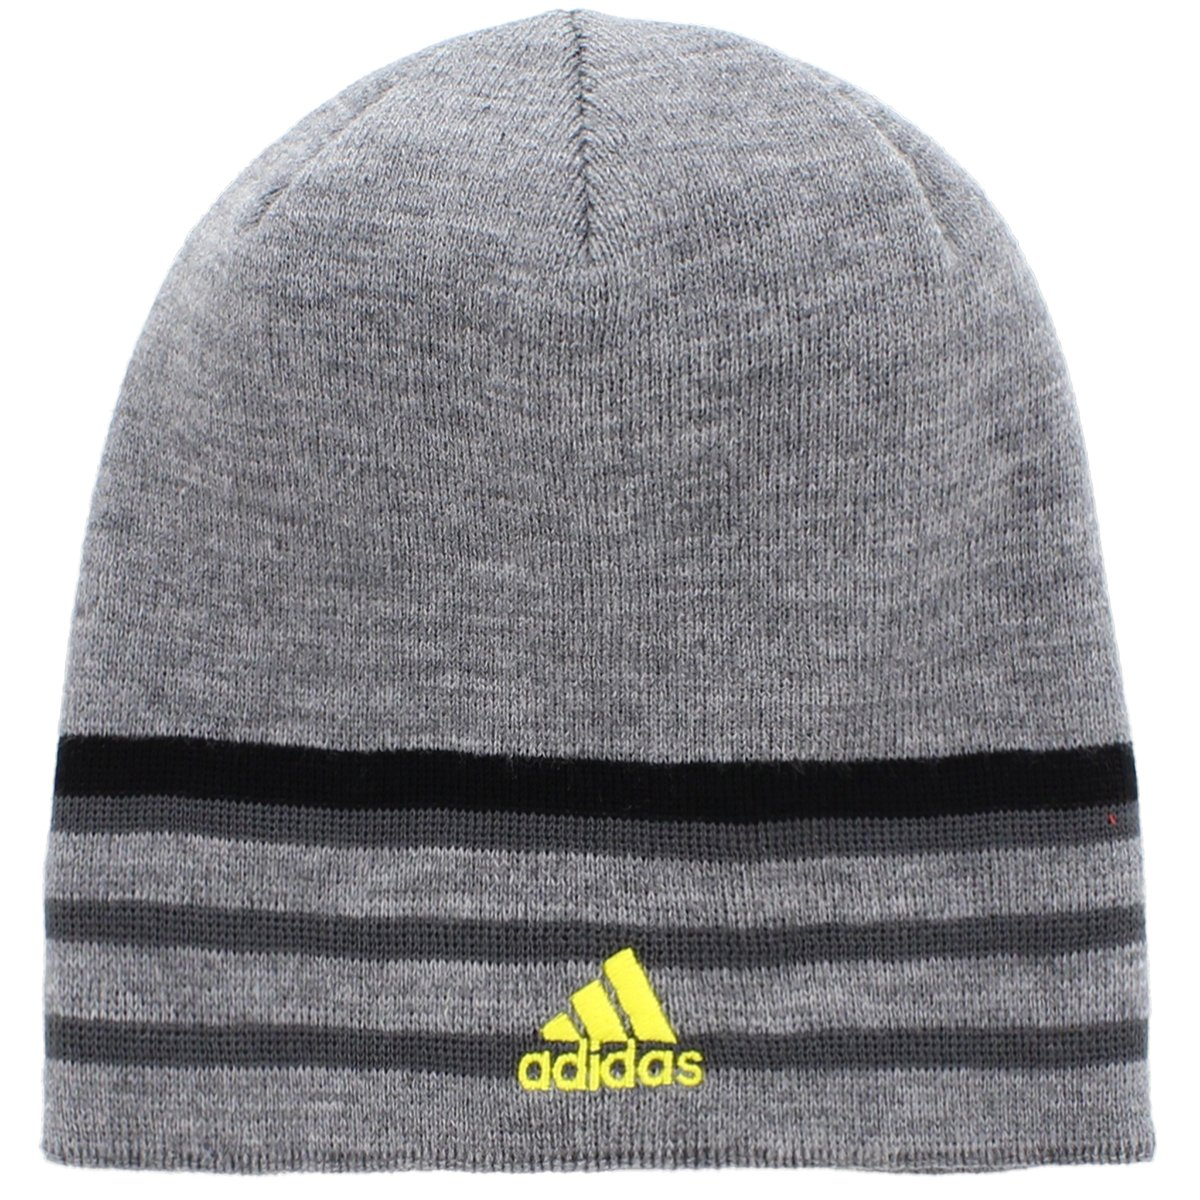 Galleon - Adidas Men s Eclipse Reversible Beanie 8dd16864de5